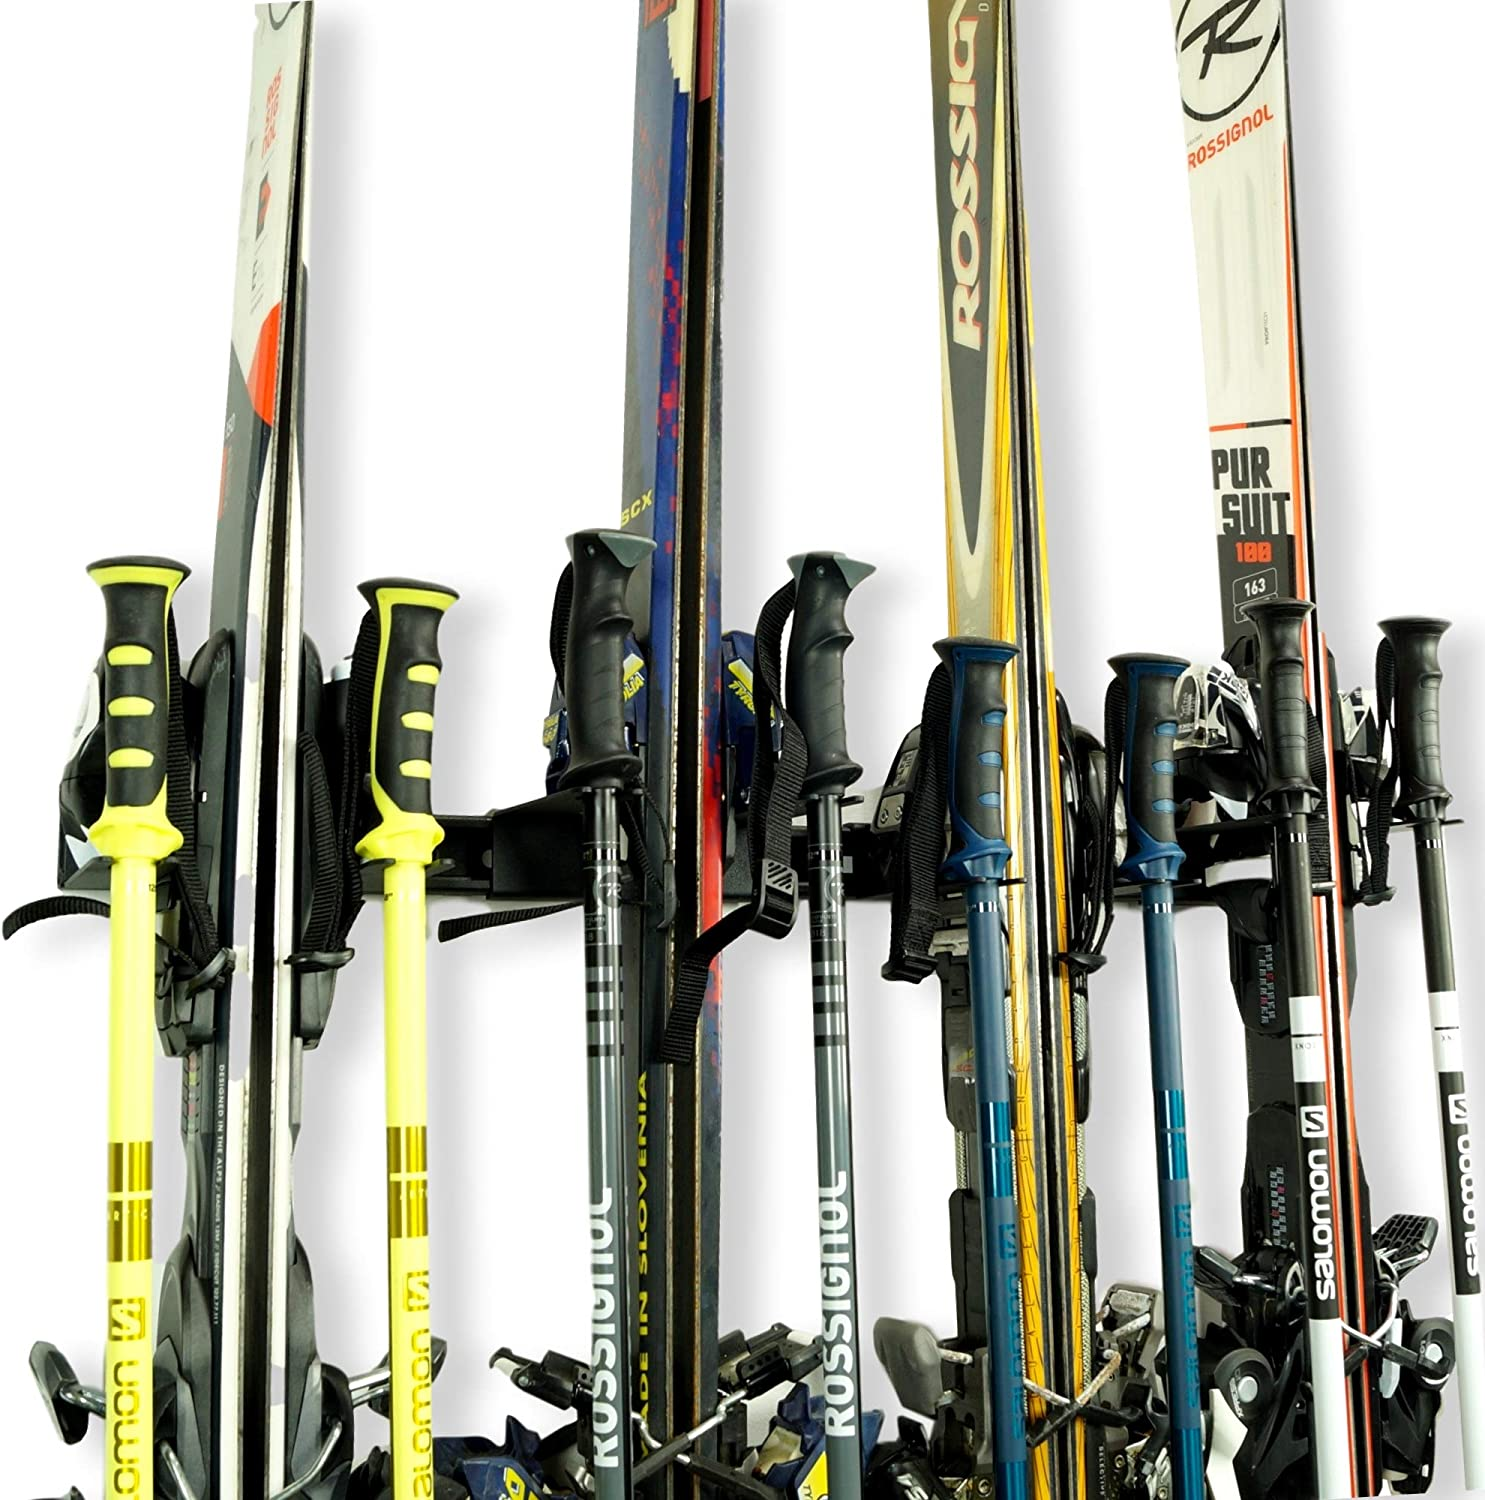 Koova Snow Ski Rack Wall Mount for Indoor Storage Made in USA Securely Holds 4 Pairs of Skis Plus Poles